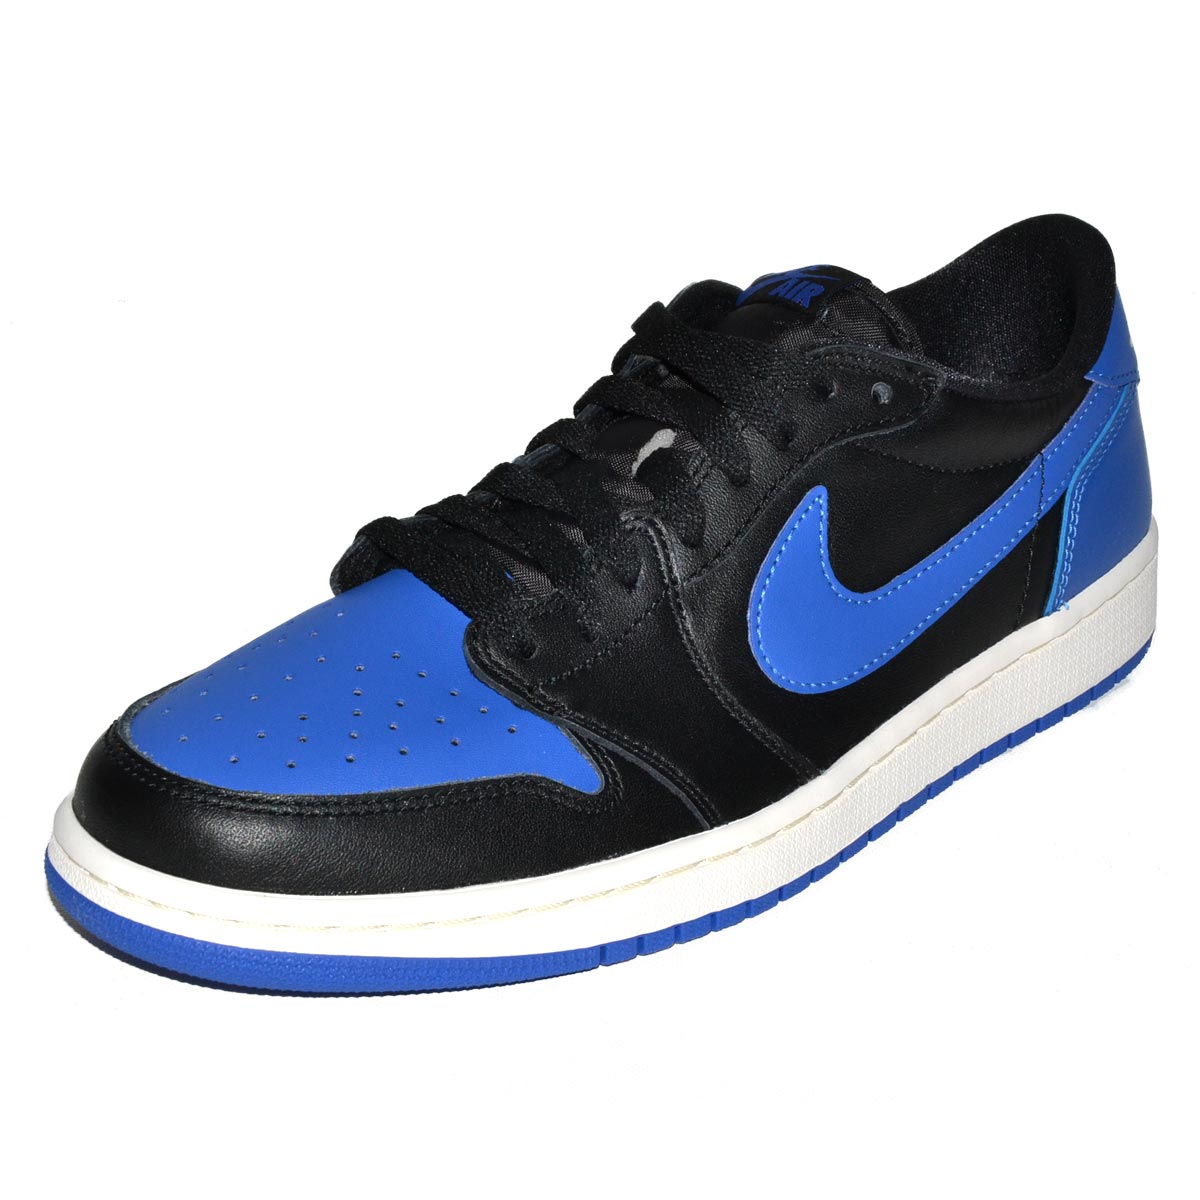 c6706c04478 Details about NIKE AIR JORDAN 1 RETRO LOW OG 705329-004 ROYAL VARSITY BLUE